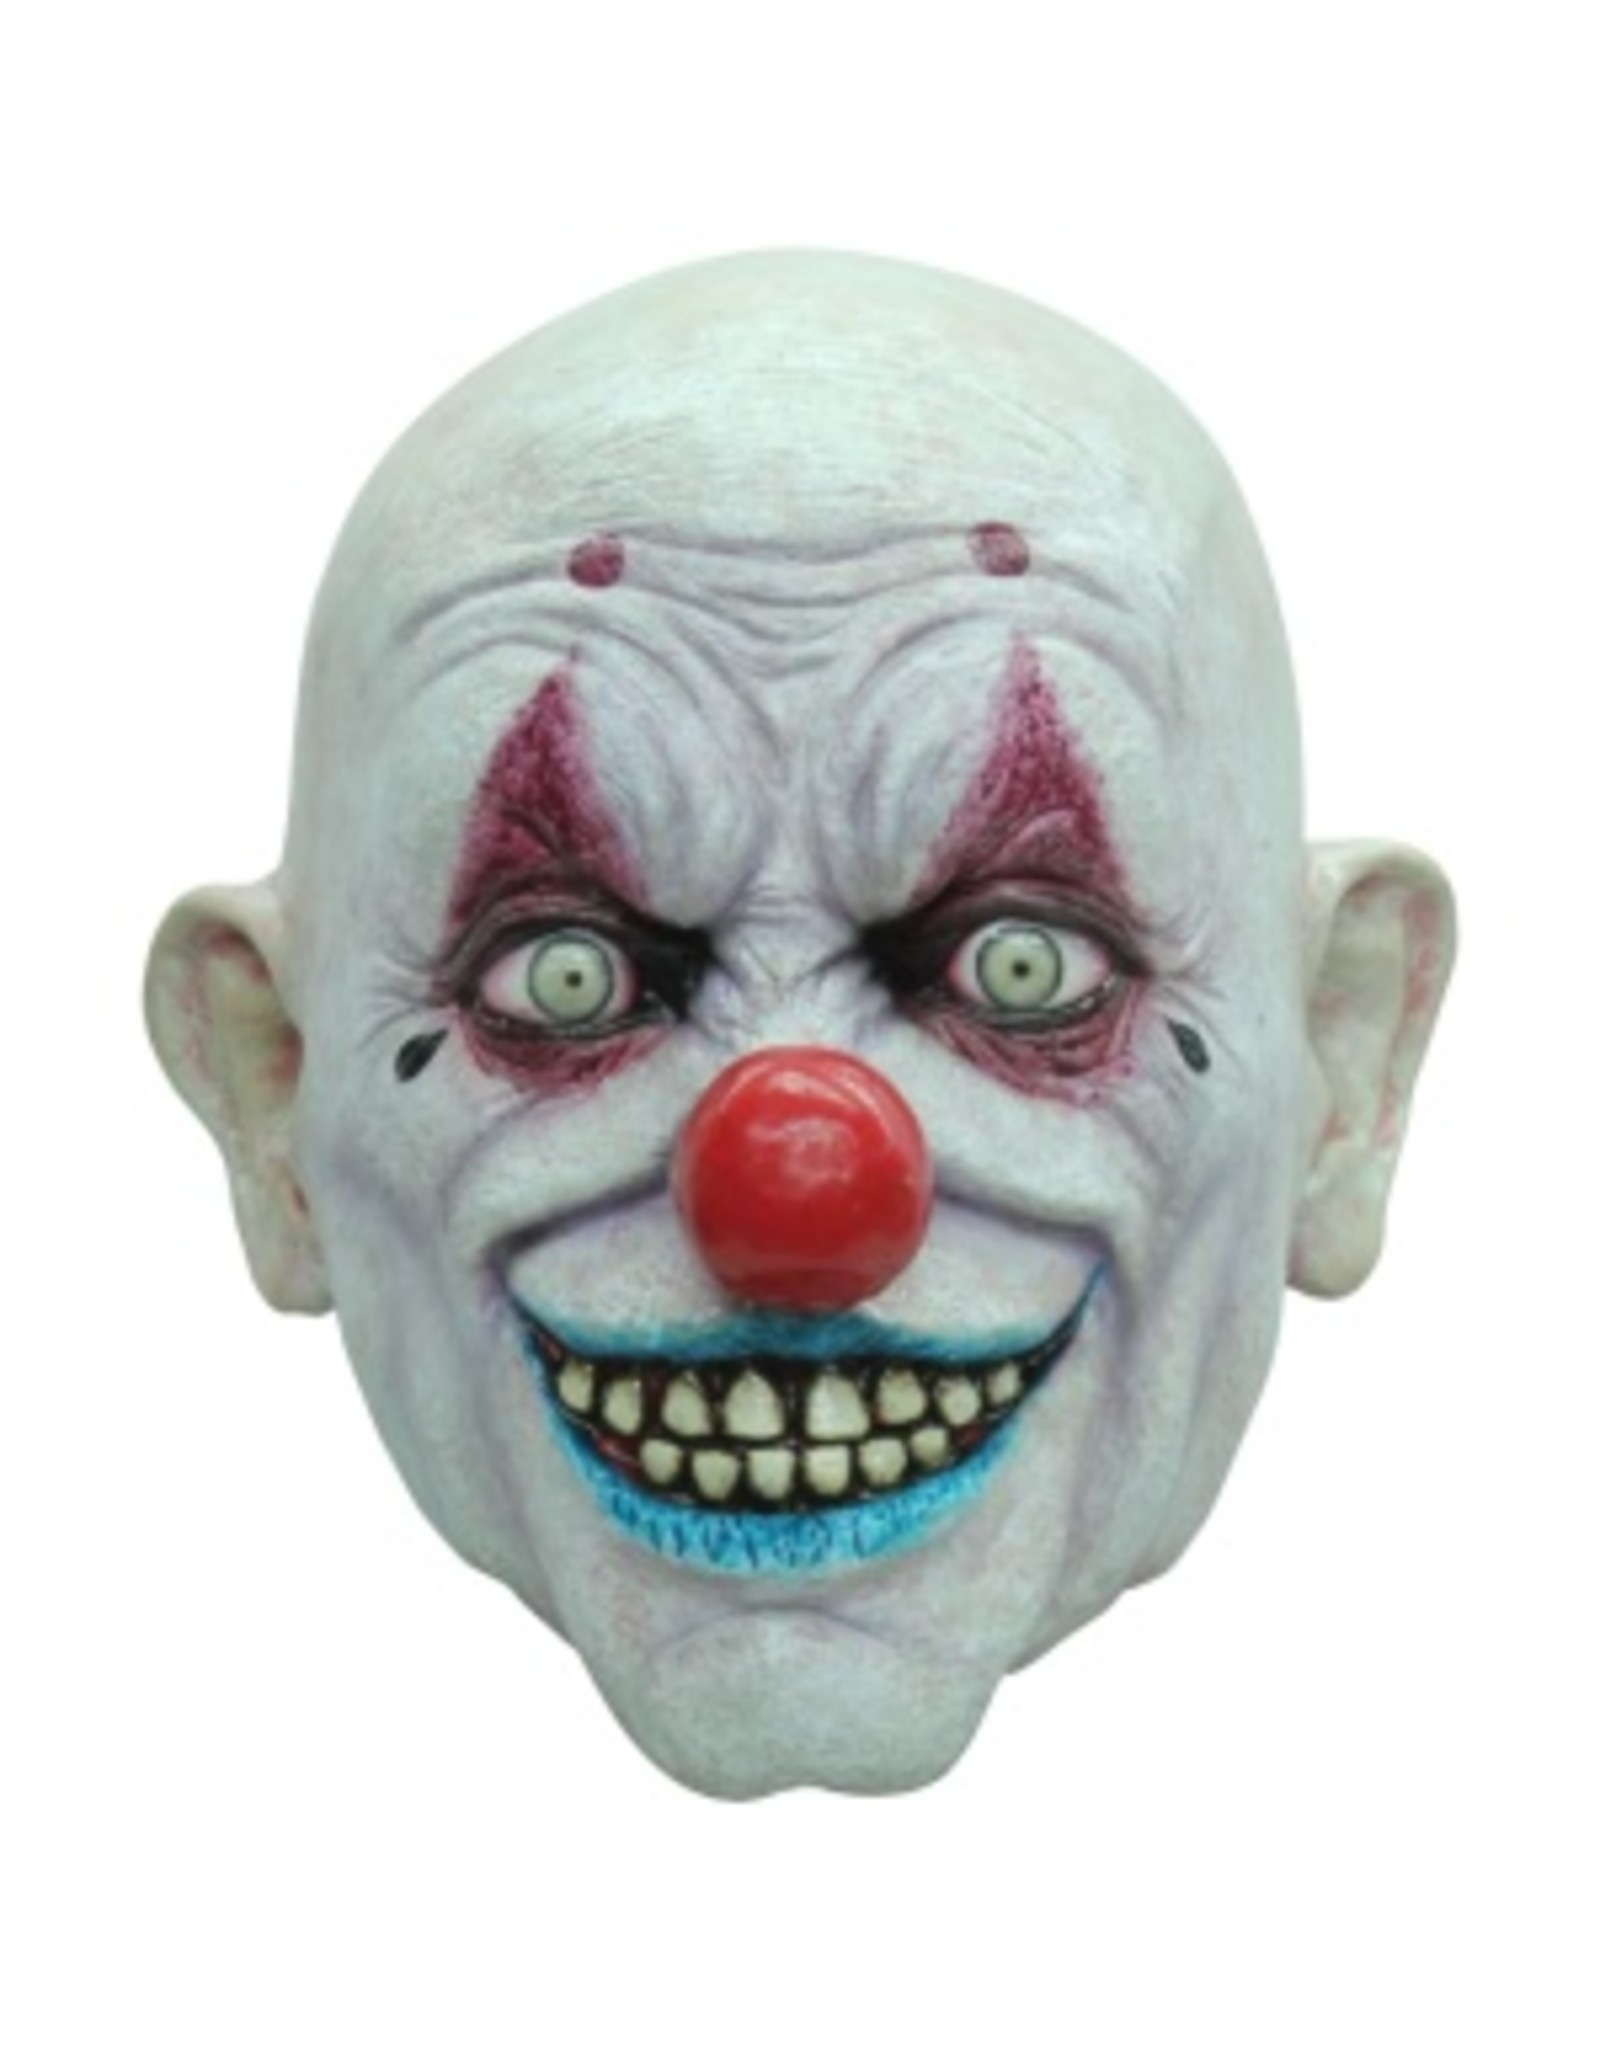 Ghoulish Crappy the Clown Mask